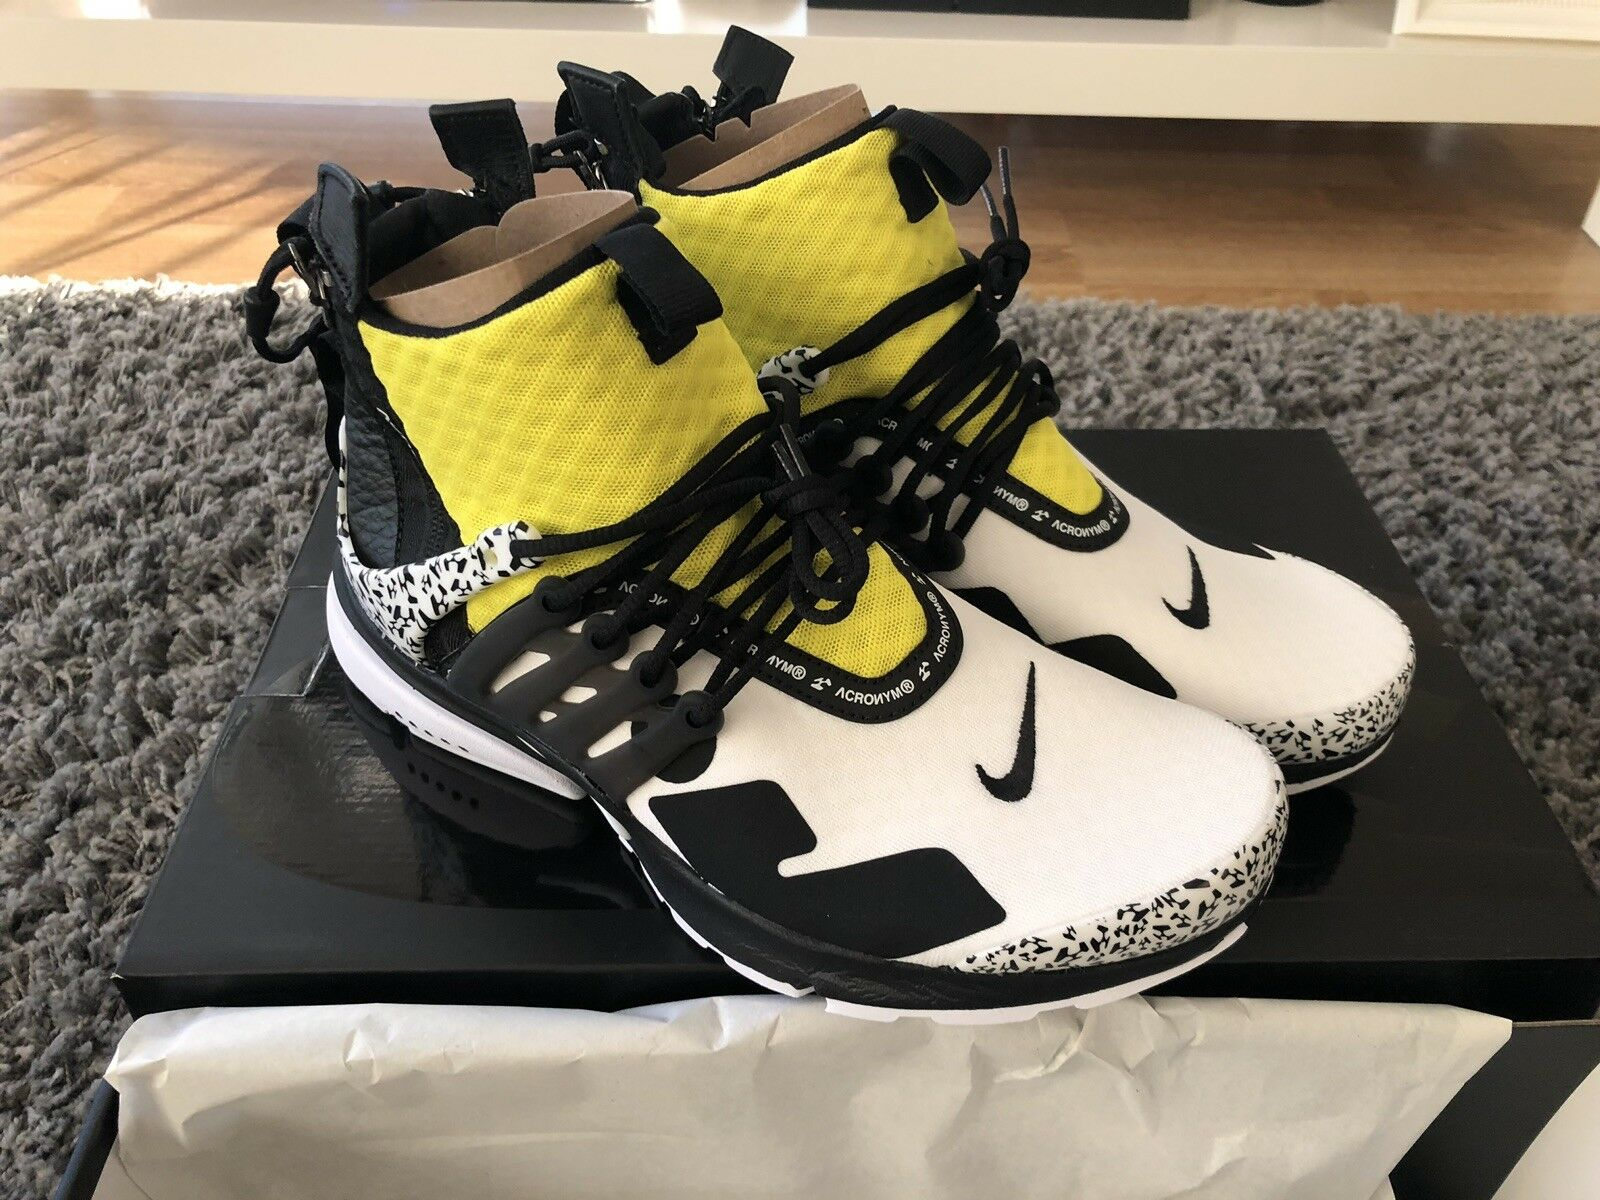 NIKE AIR PRESTO MID UTILITY X ACRONYM DYNAMIC YELLOW UK7